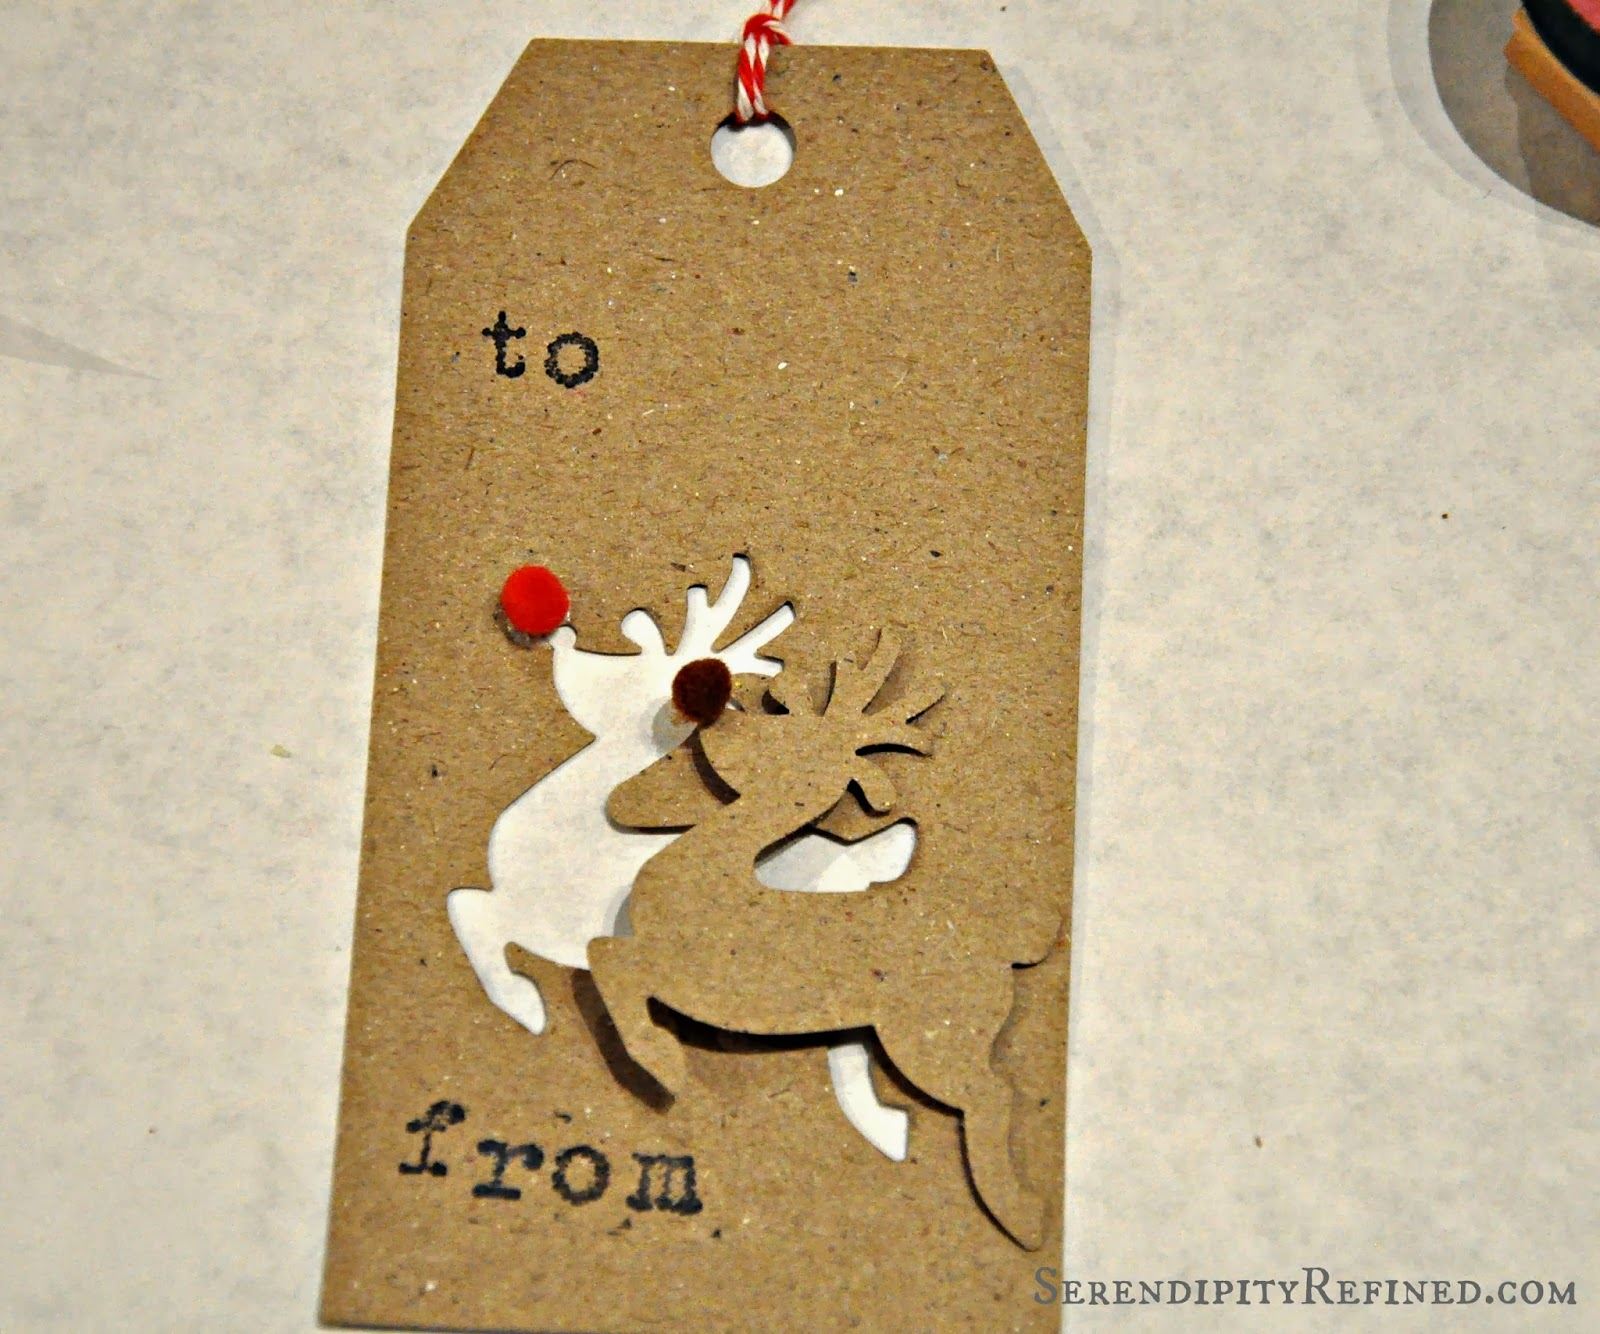 Serendipity Refined Blog: Holiday Gift Tag Ideas and ...